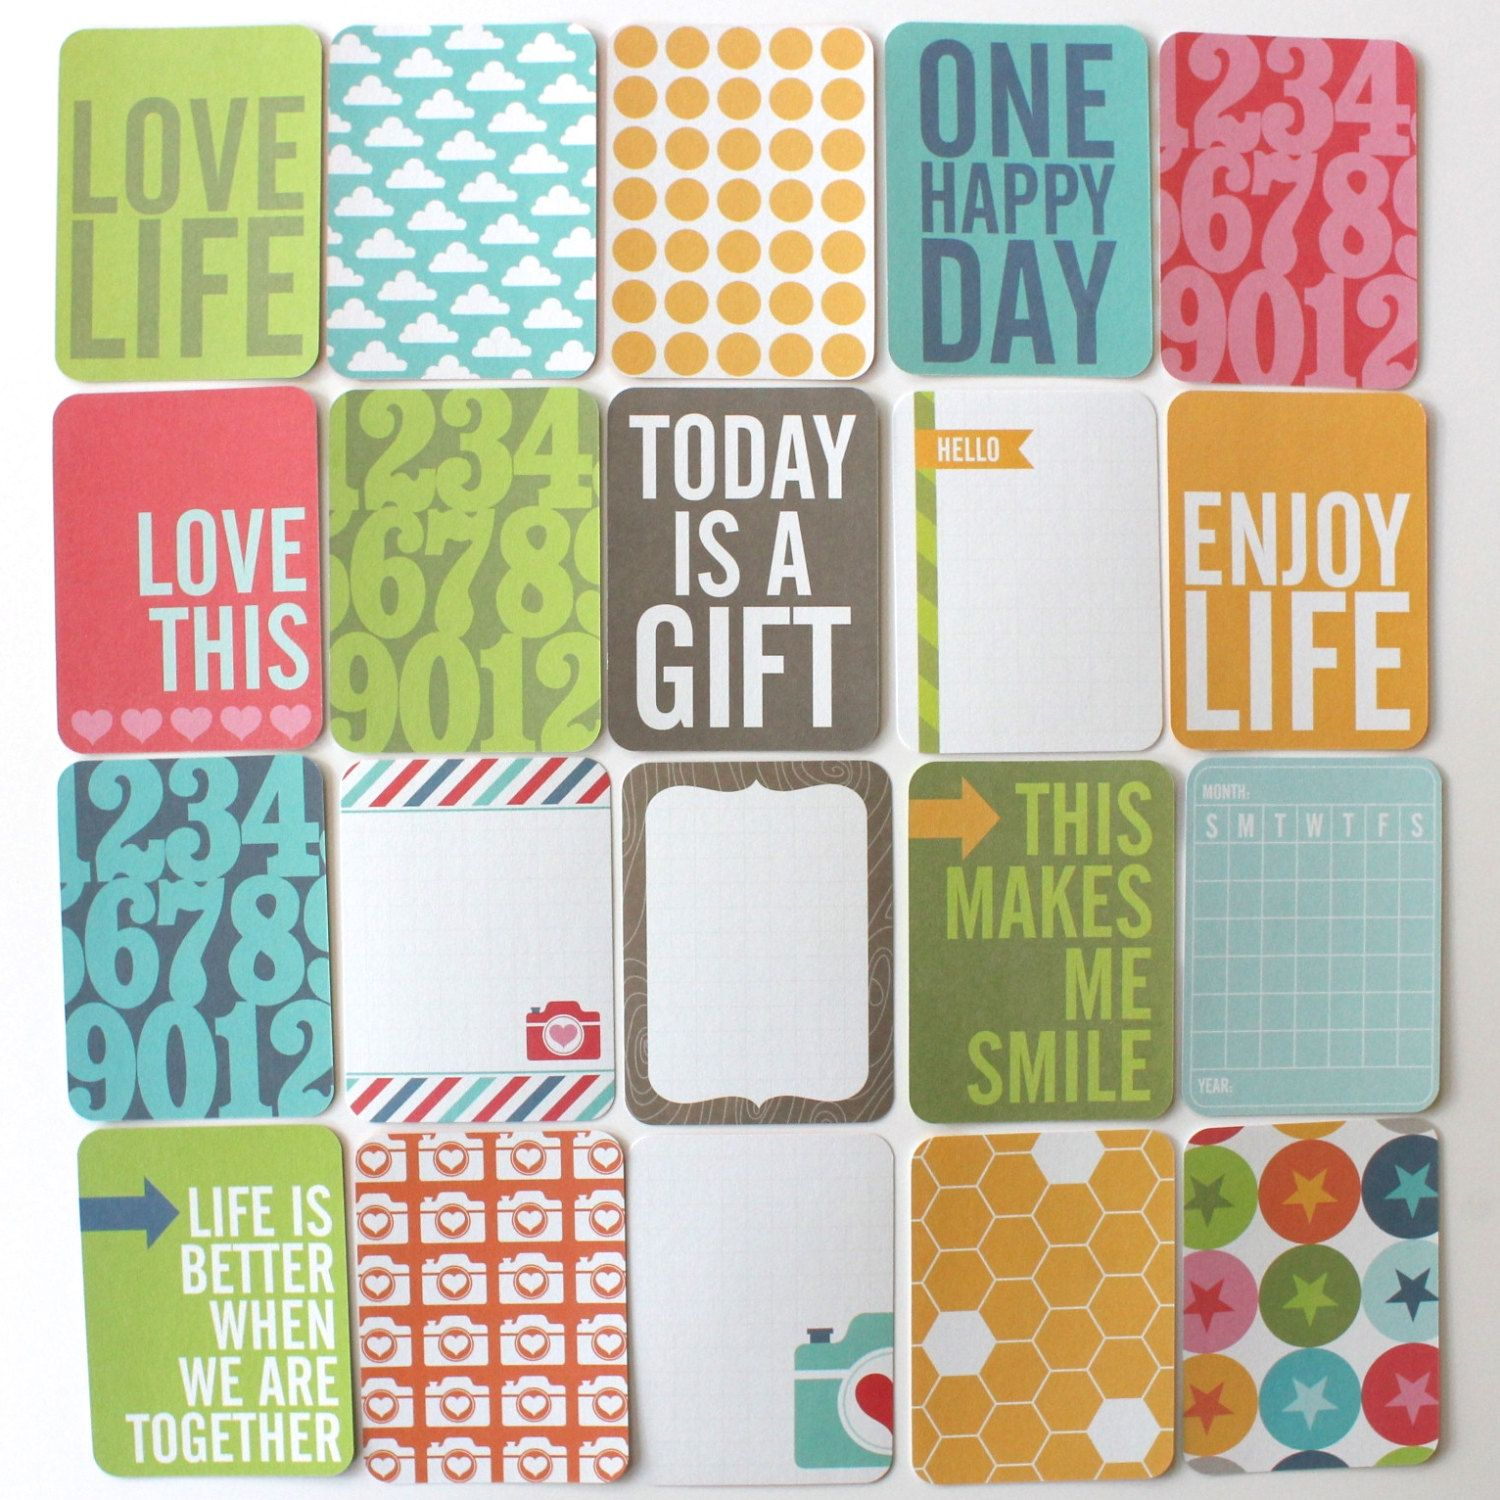 50 Project Life Cards HONEY Core Kit 3 x 4 Pocket Cards by